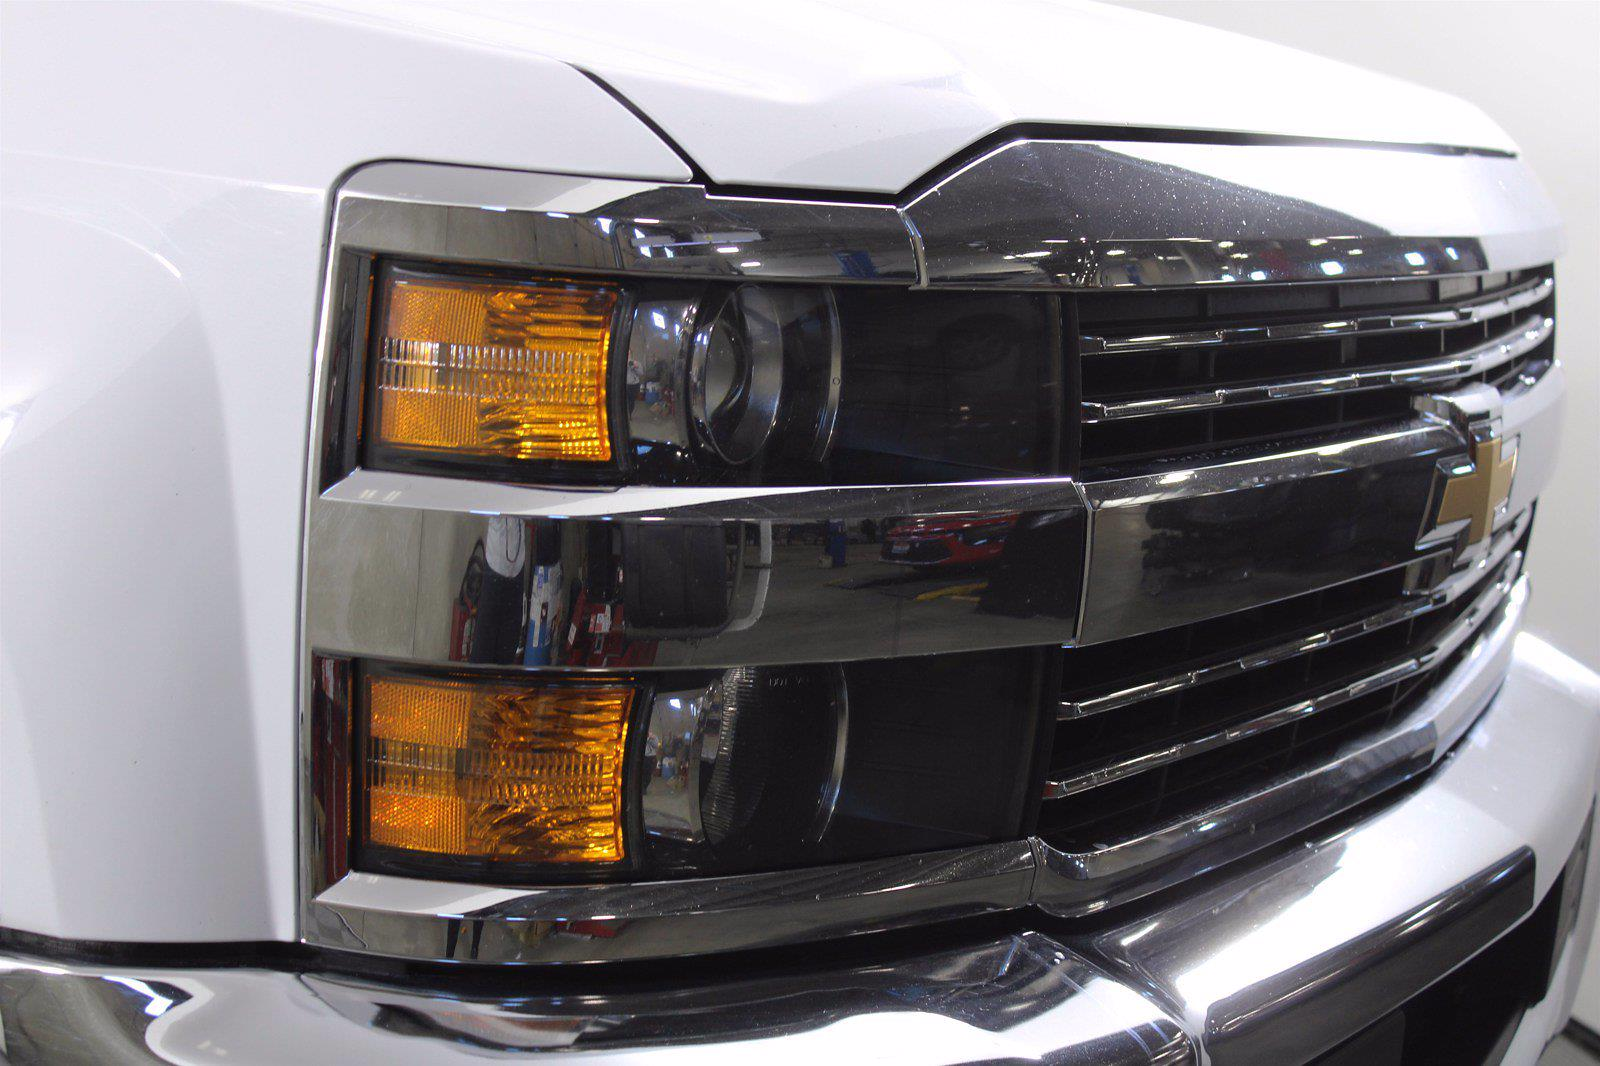 2016 Chevrolet Silverado 2500 Crew Cab 4x4, Pickup #DAC0054 - photo 1